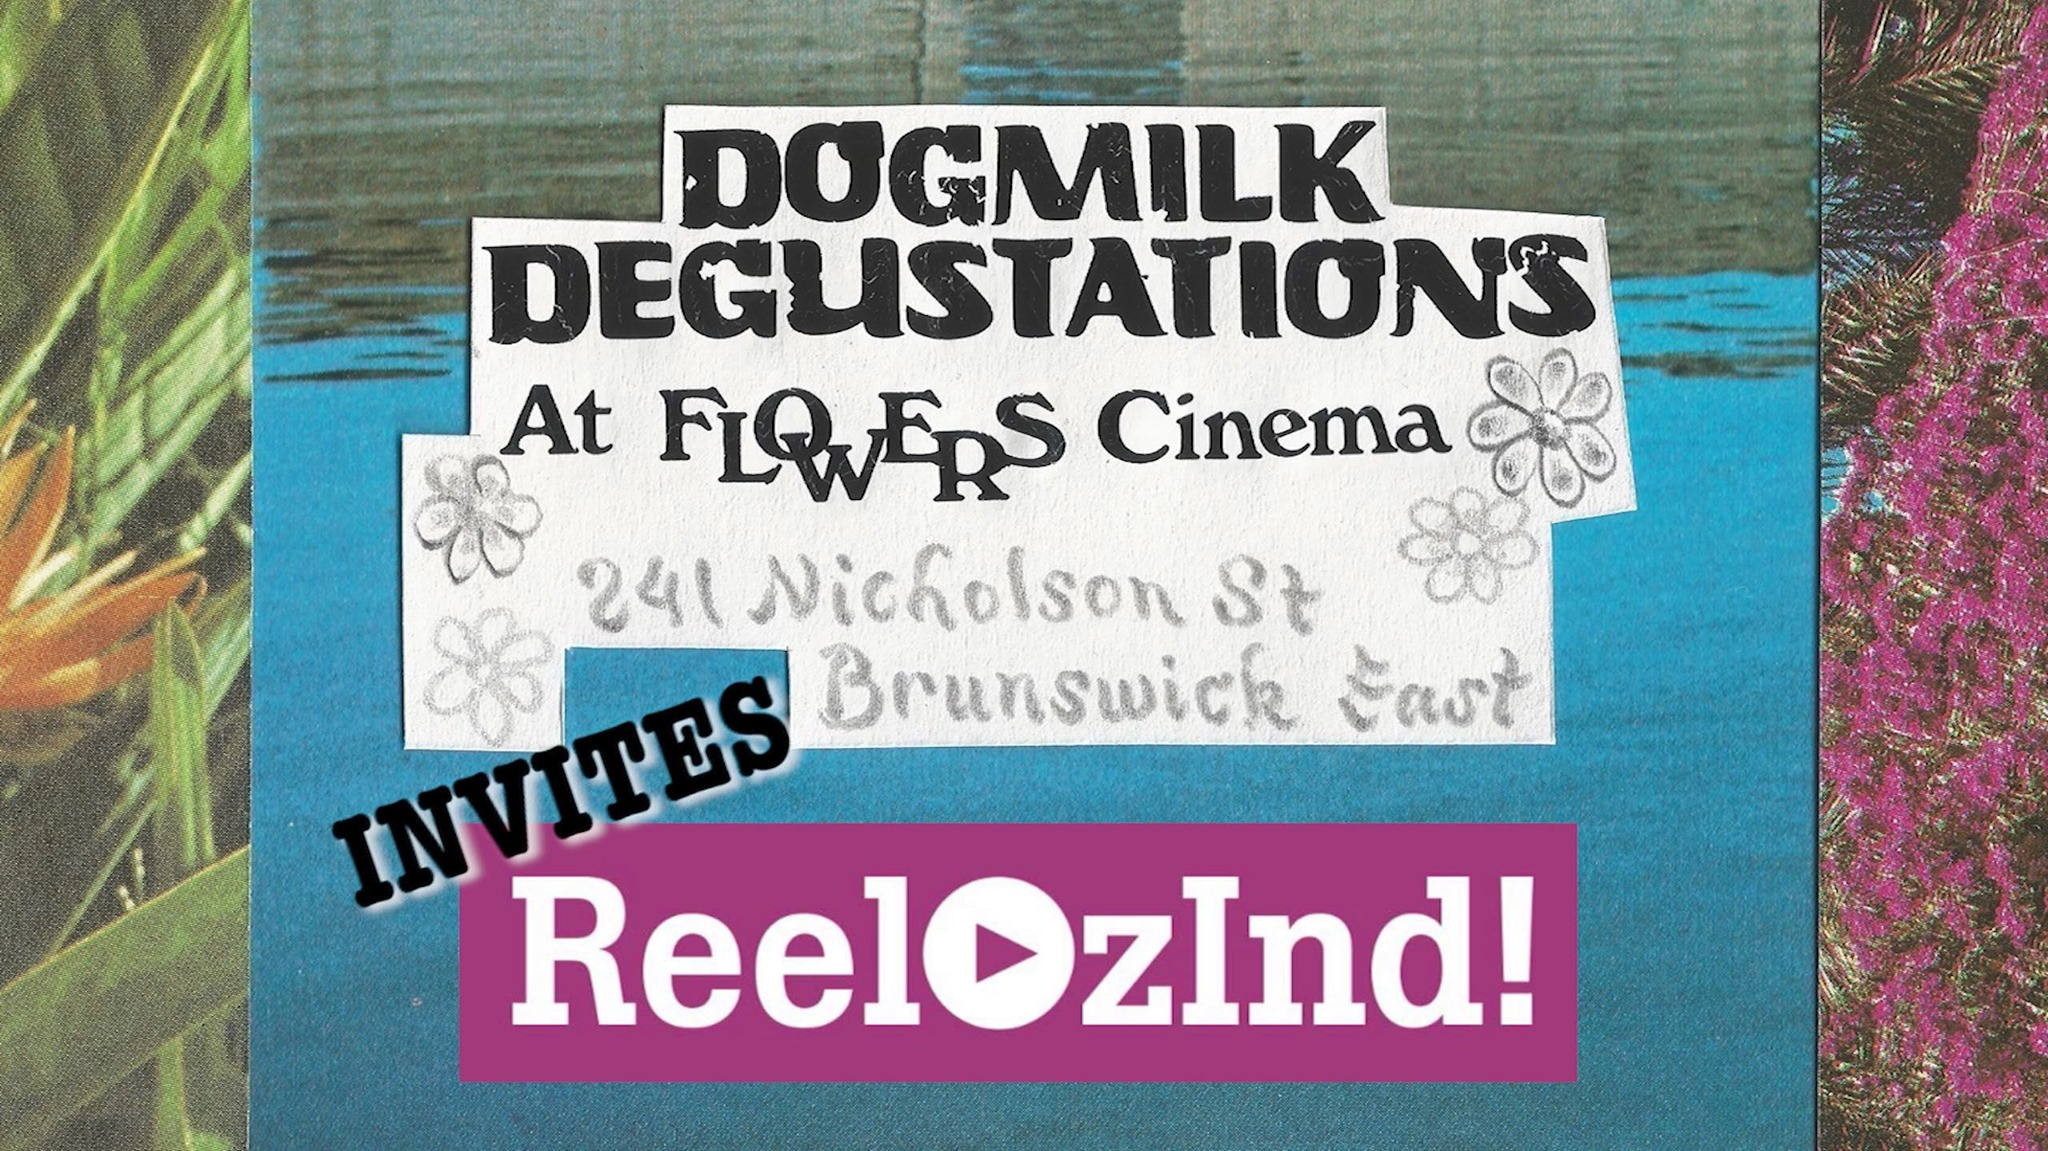 Dogmilk Degustations special edition: ReelOzInd Invitational